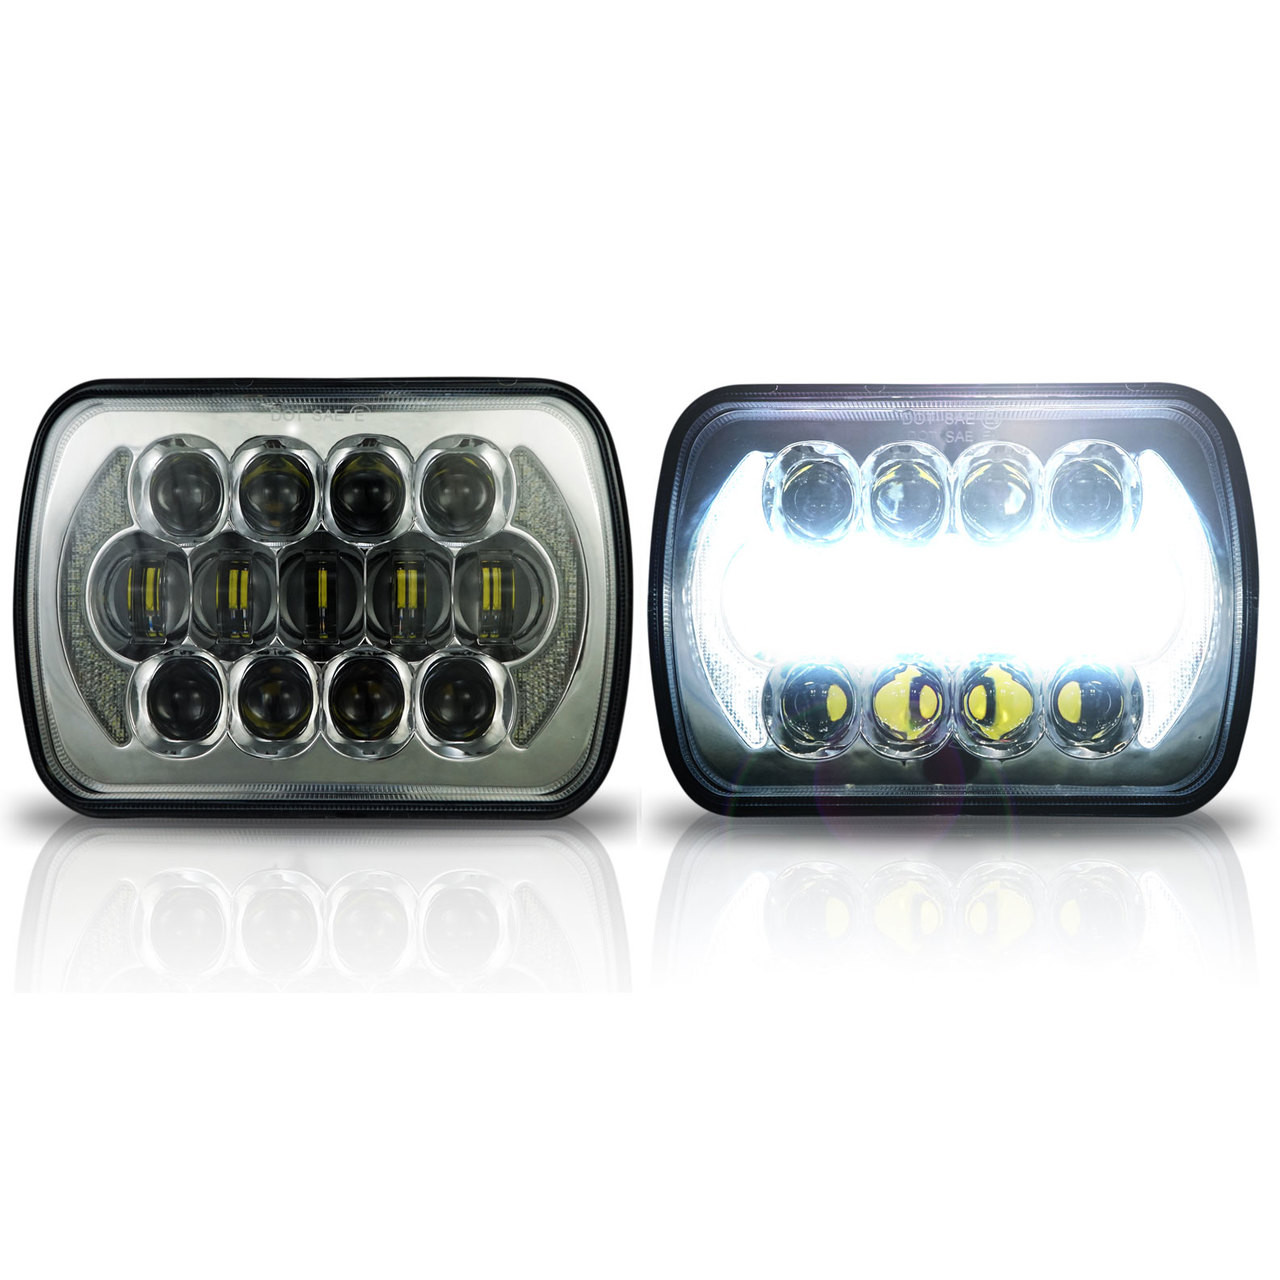 Auto parts headlights 7x6 inch square genssi 76 57 h6054 200mm led projector wdrl headlights sciox Images